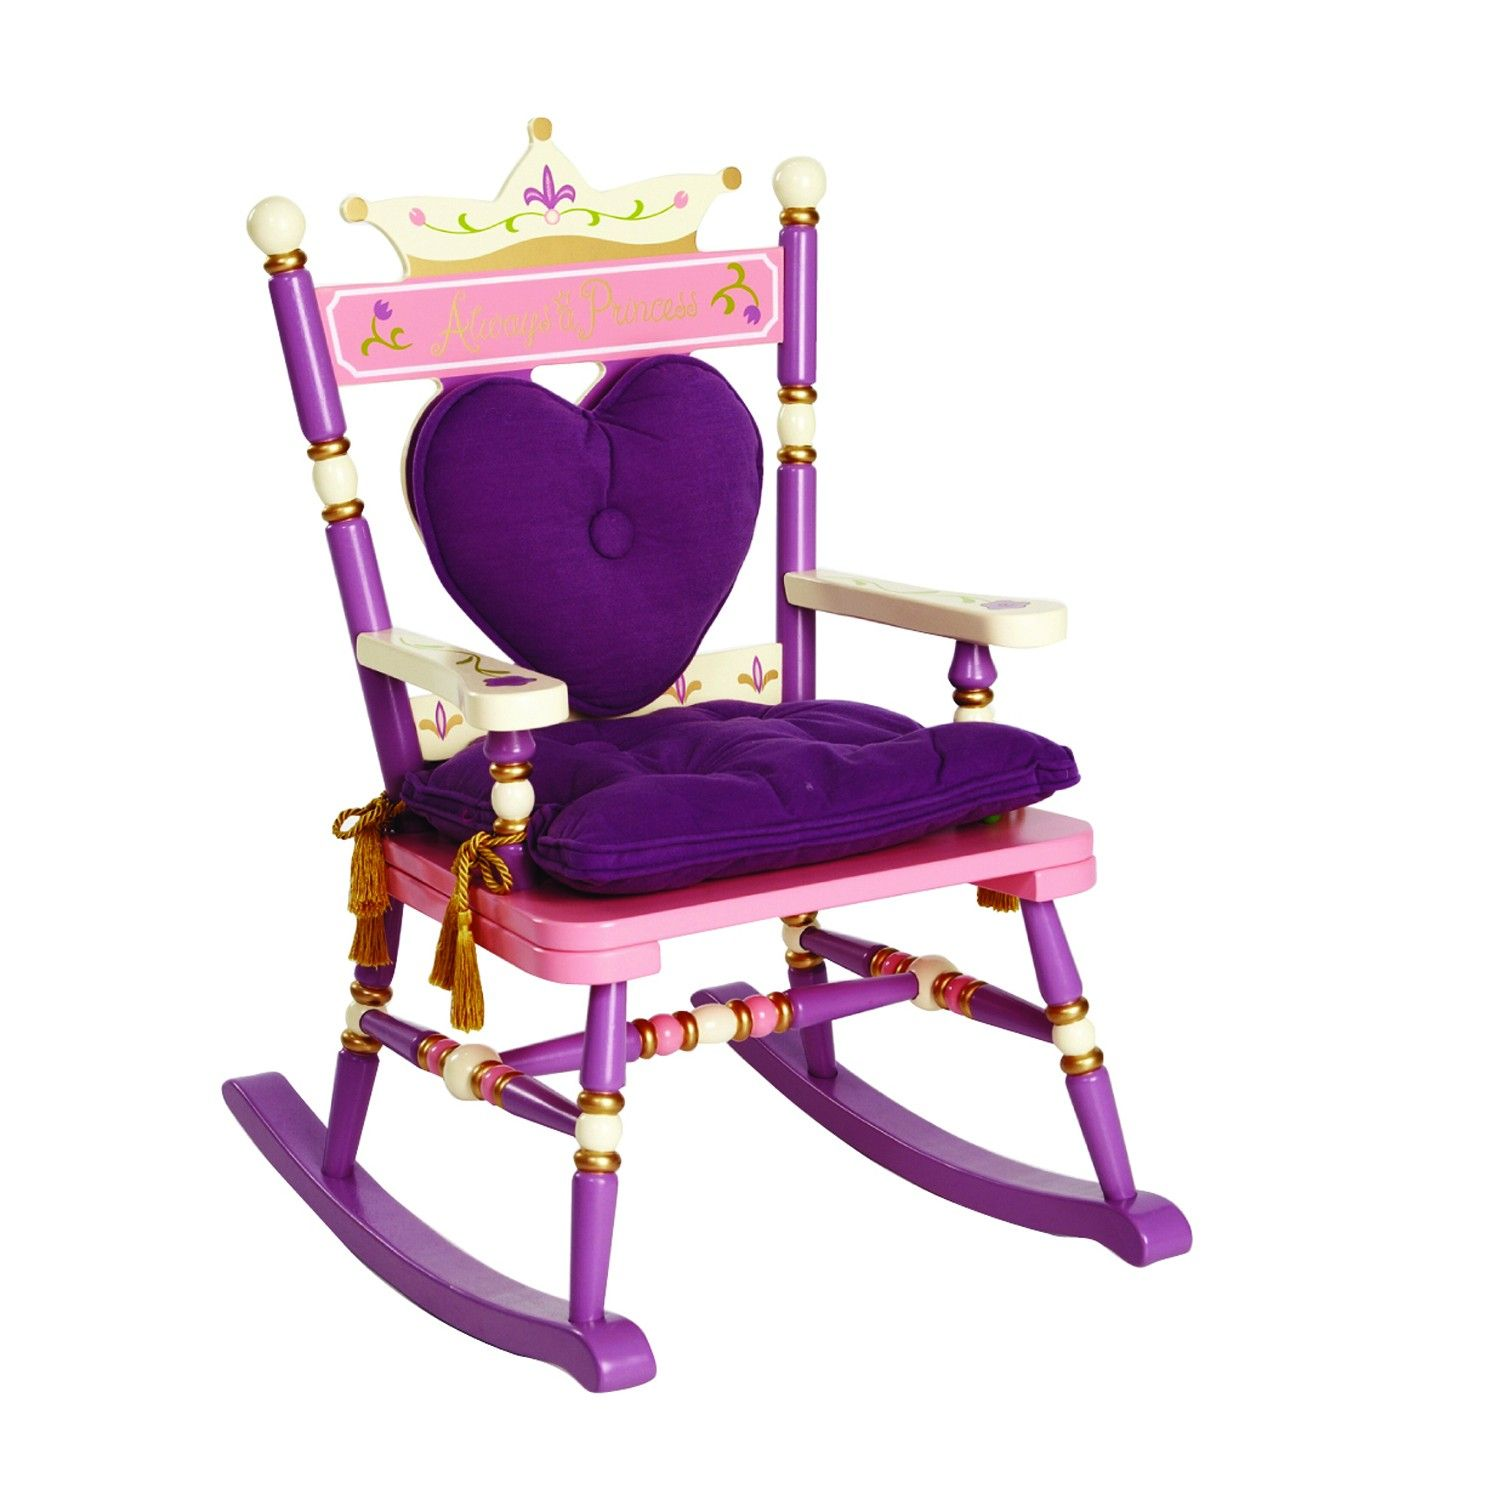 Levels of Discovery Royal Princess Children s Rocker Rocking Chair